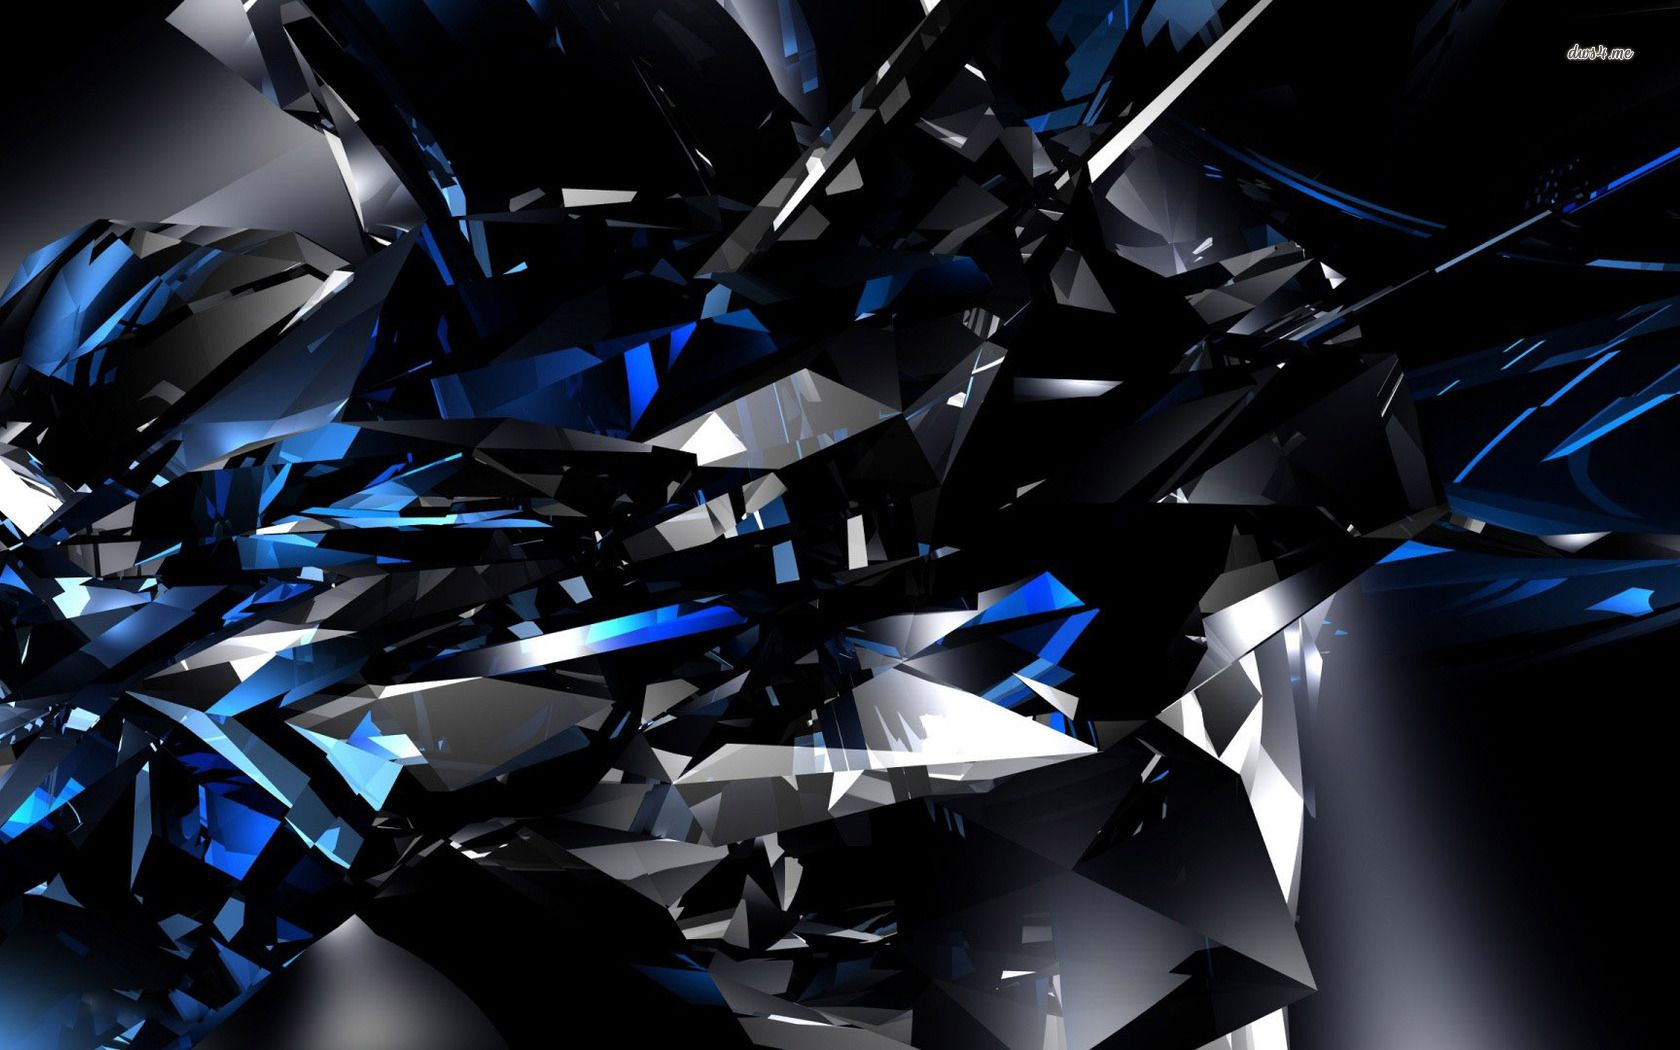 Black And Blue Crystals Wallpaper 3d Wallpapers 9419 Crystal